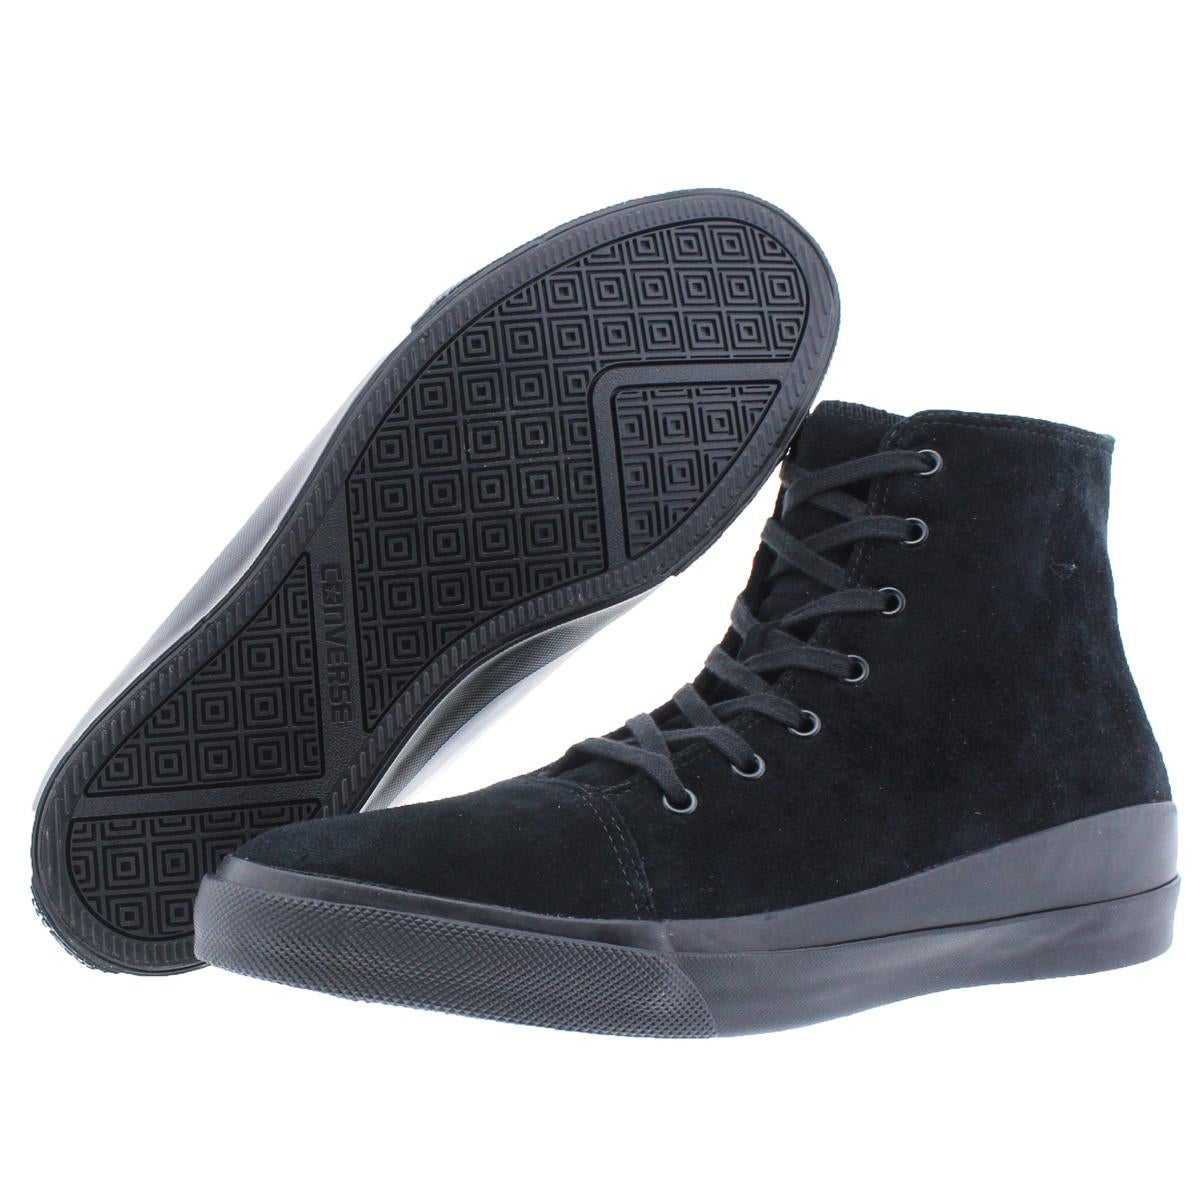 Shop Converse Mens Chuck Taylor All Star Quantum HI Skate Shoes Suede Hightop - 12 medium (d) - Free Shipping Today - Overstock - 22132775